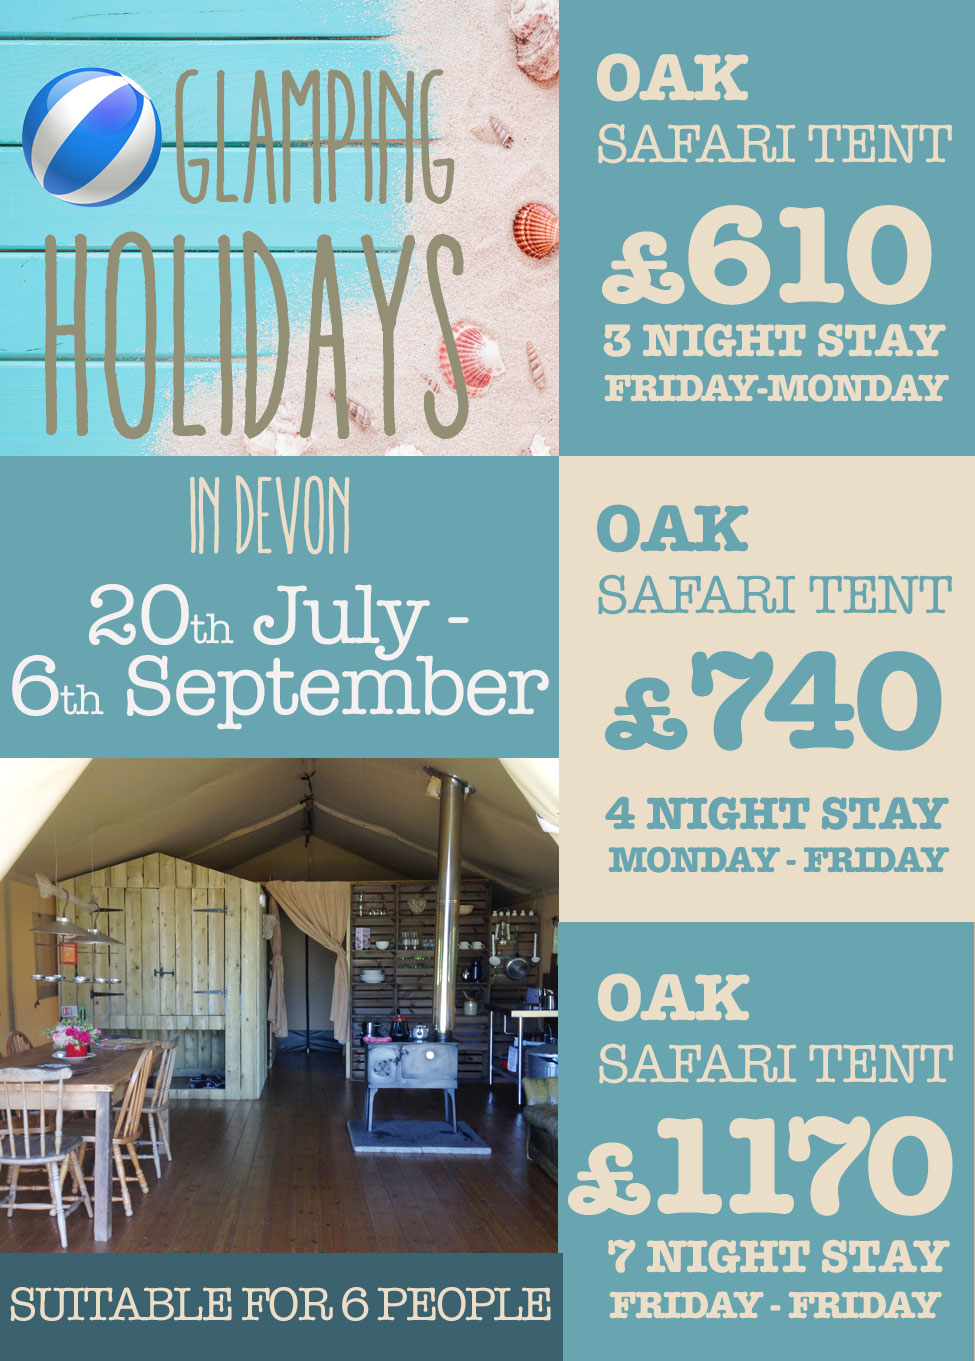 OAK SAFARI TENT SUMMER Glamping Holidays Devon